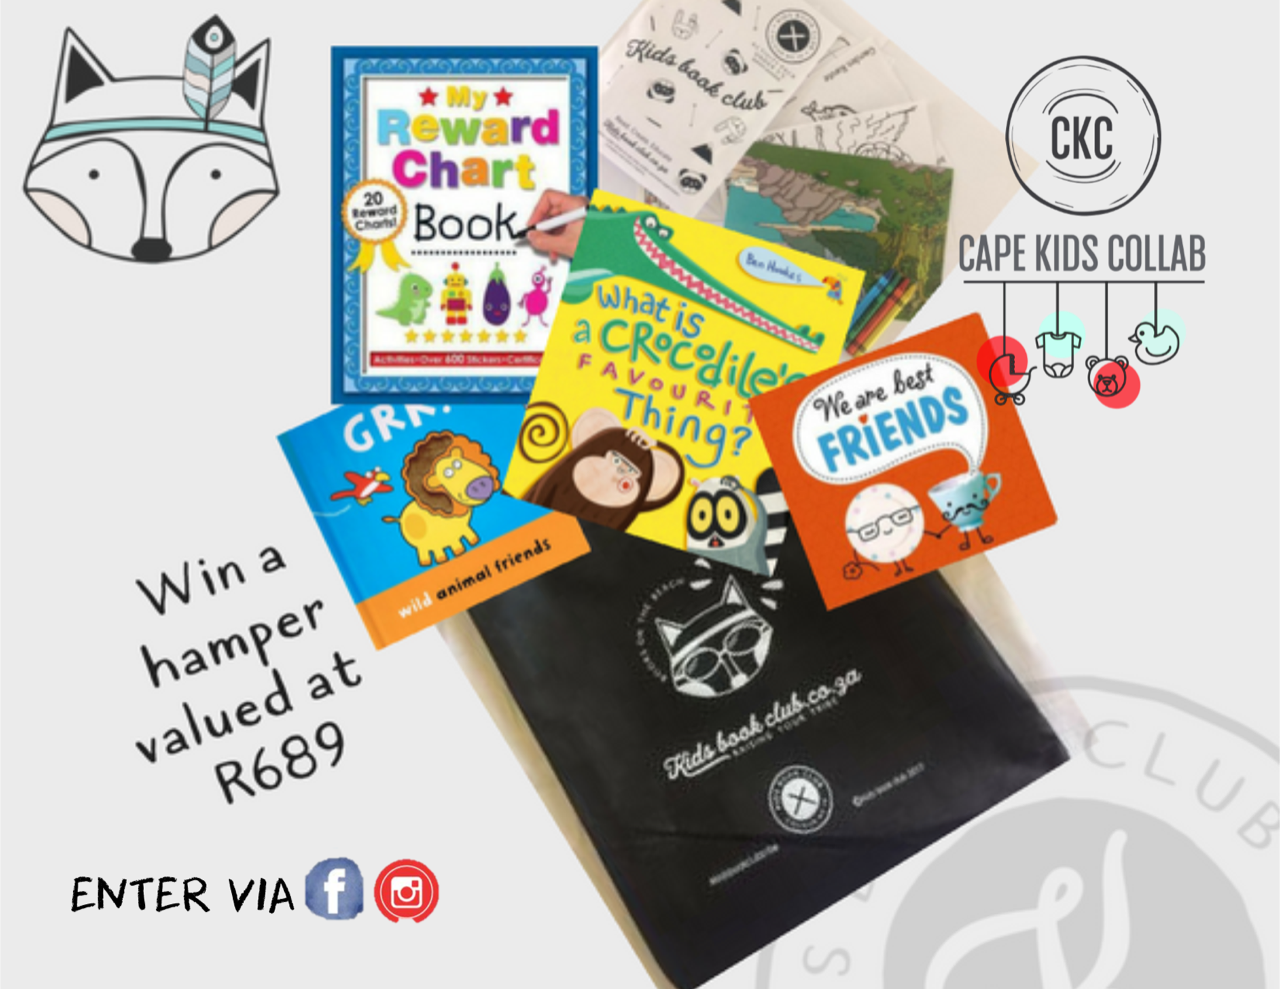 Win a Kidsbookclub hamper with Cape Kids Collab